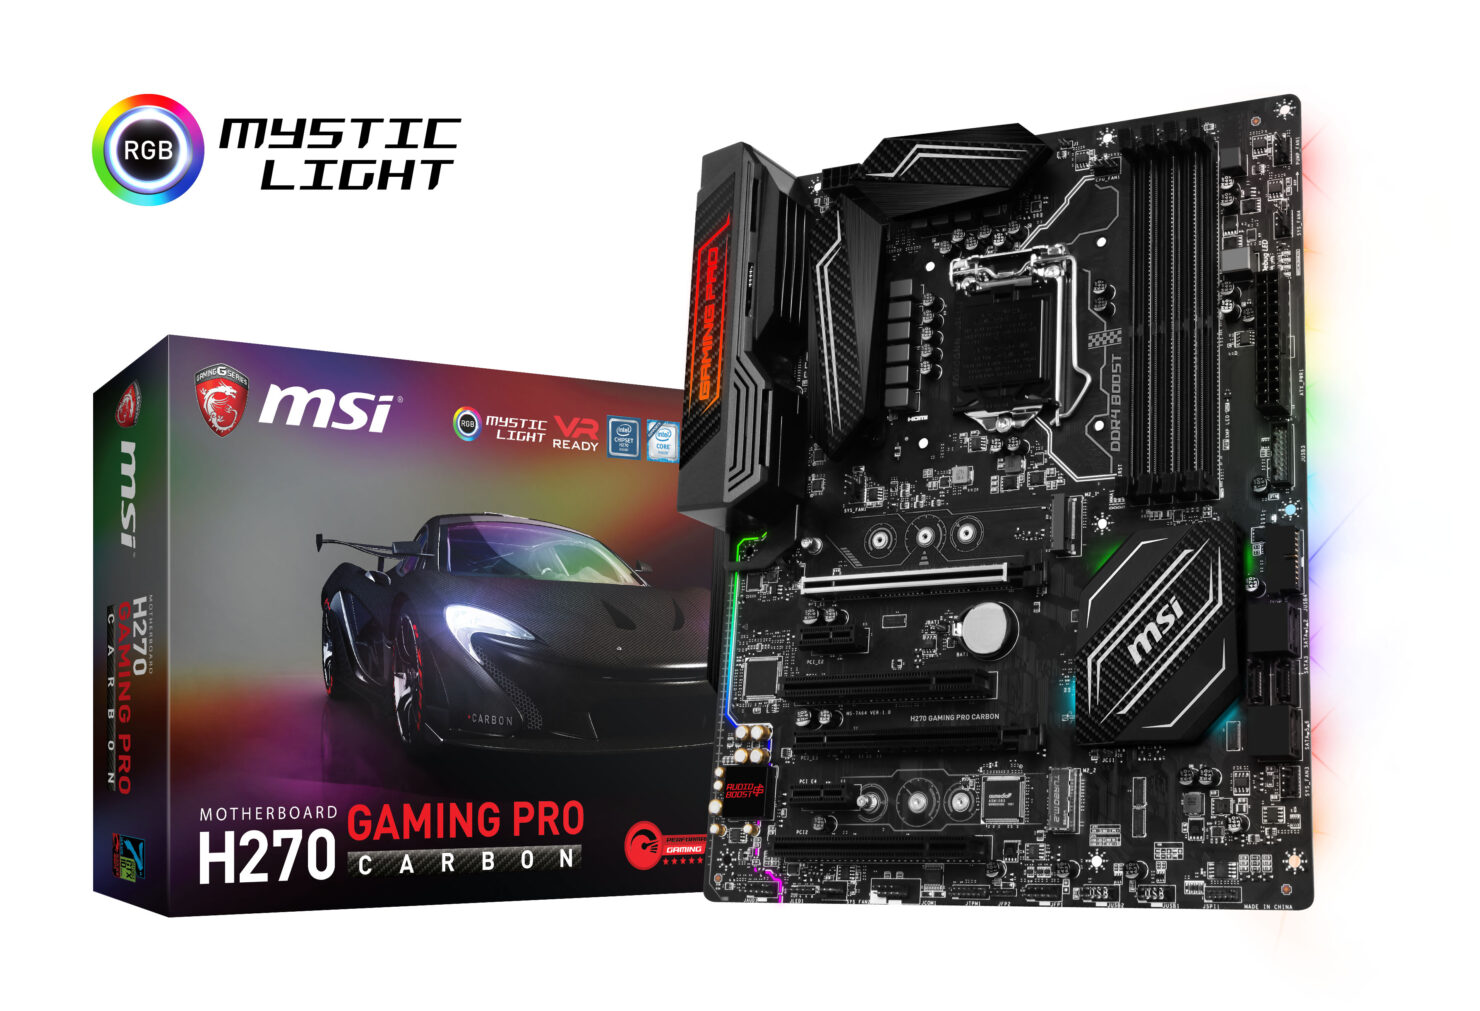 msi-h270_gaming_pro_carbon-product_picture-box